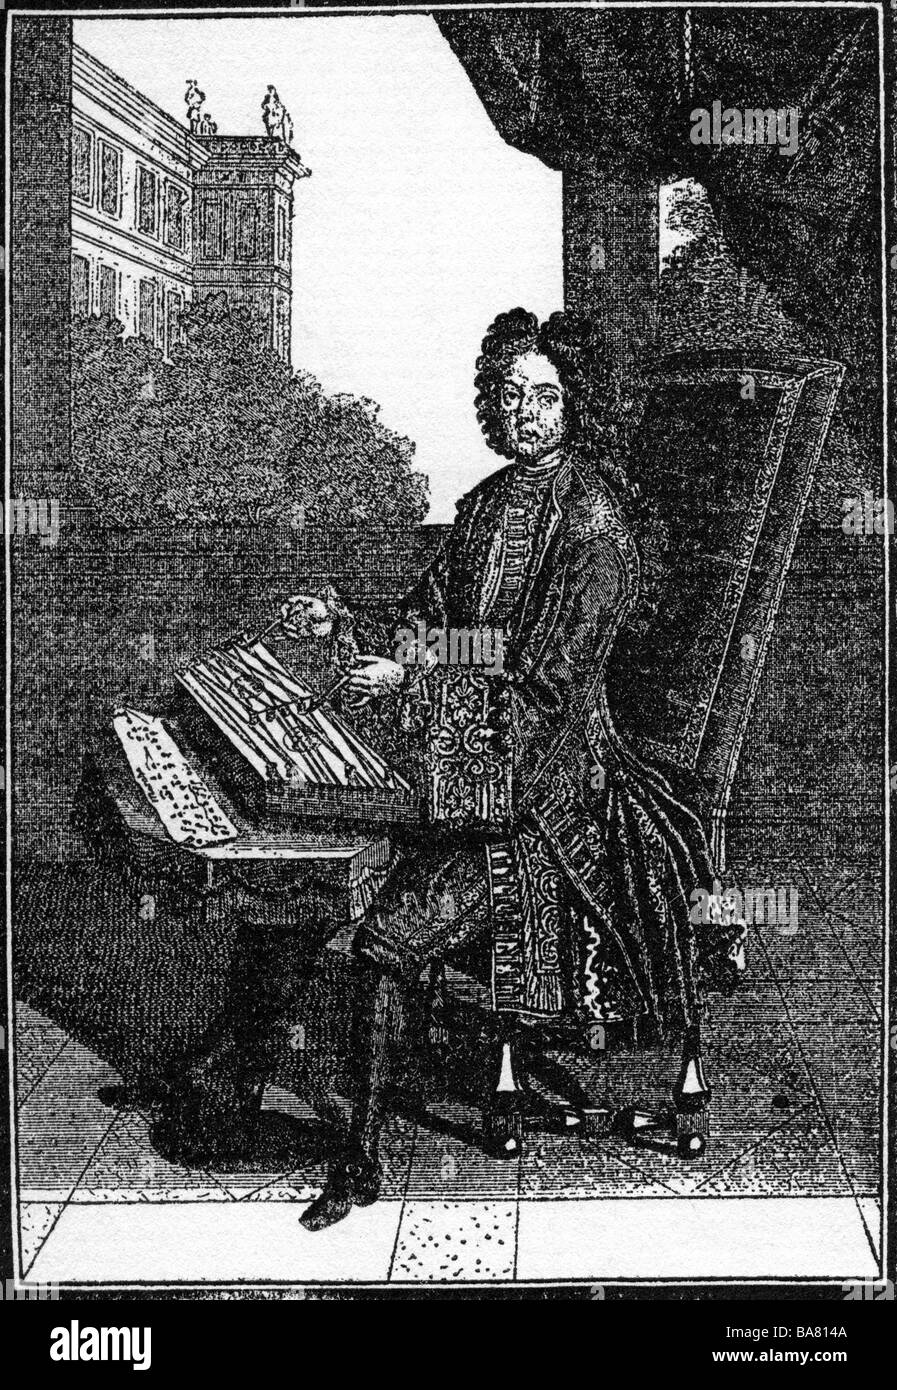 fashion, 17th century, France, mens fashion, nobleman playing Tympanum, copper engraving, circa 1680, Additional - Stock Image